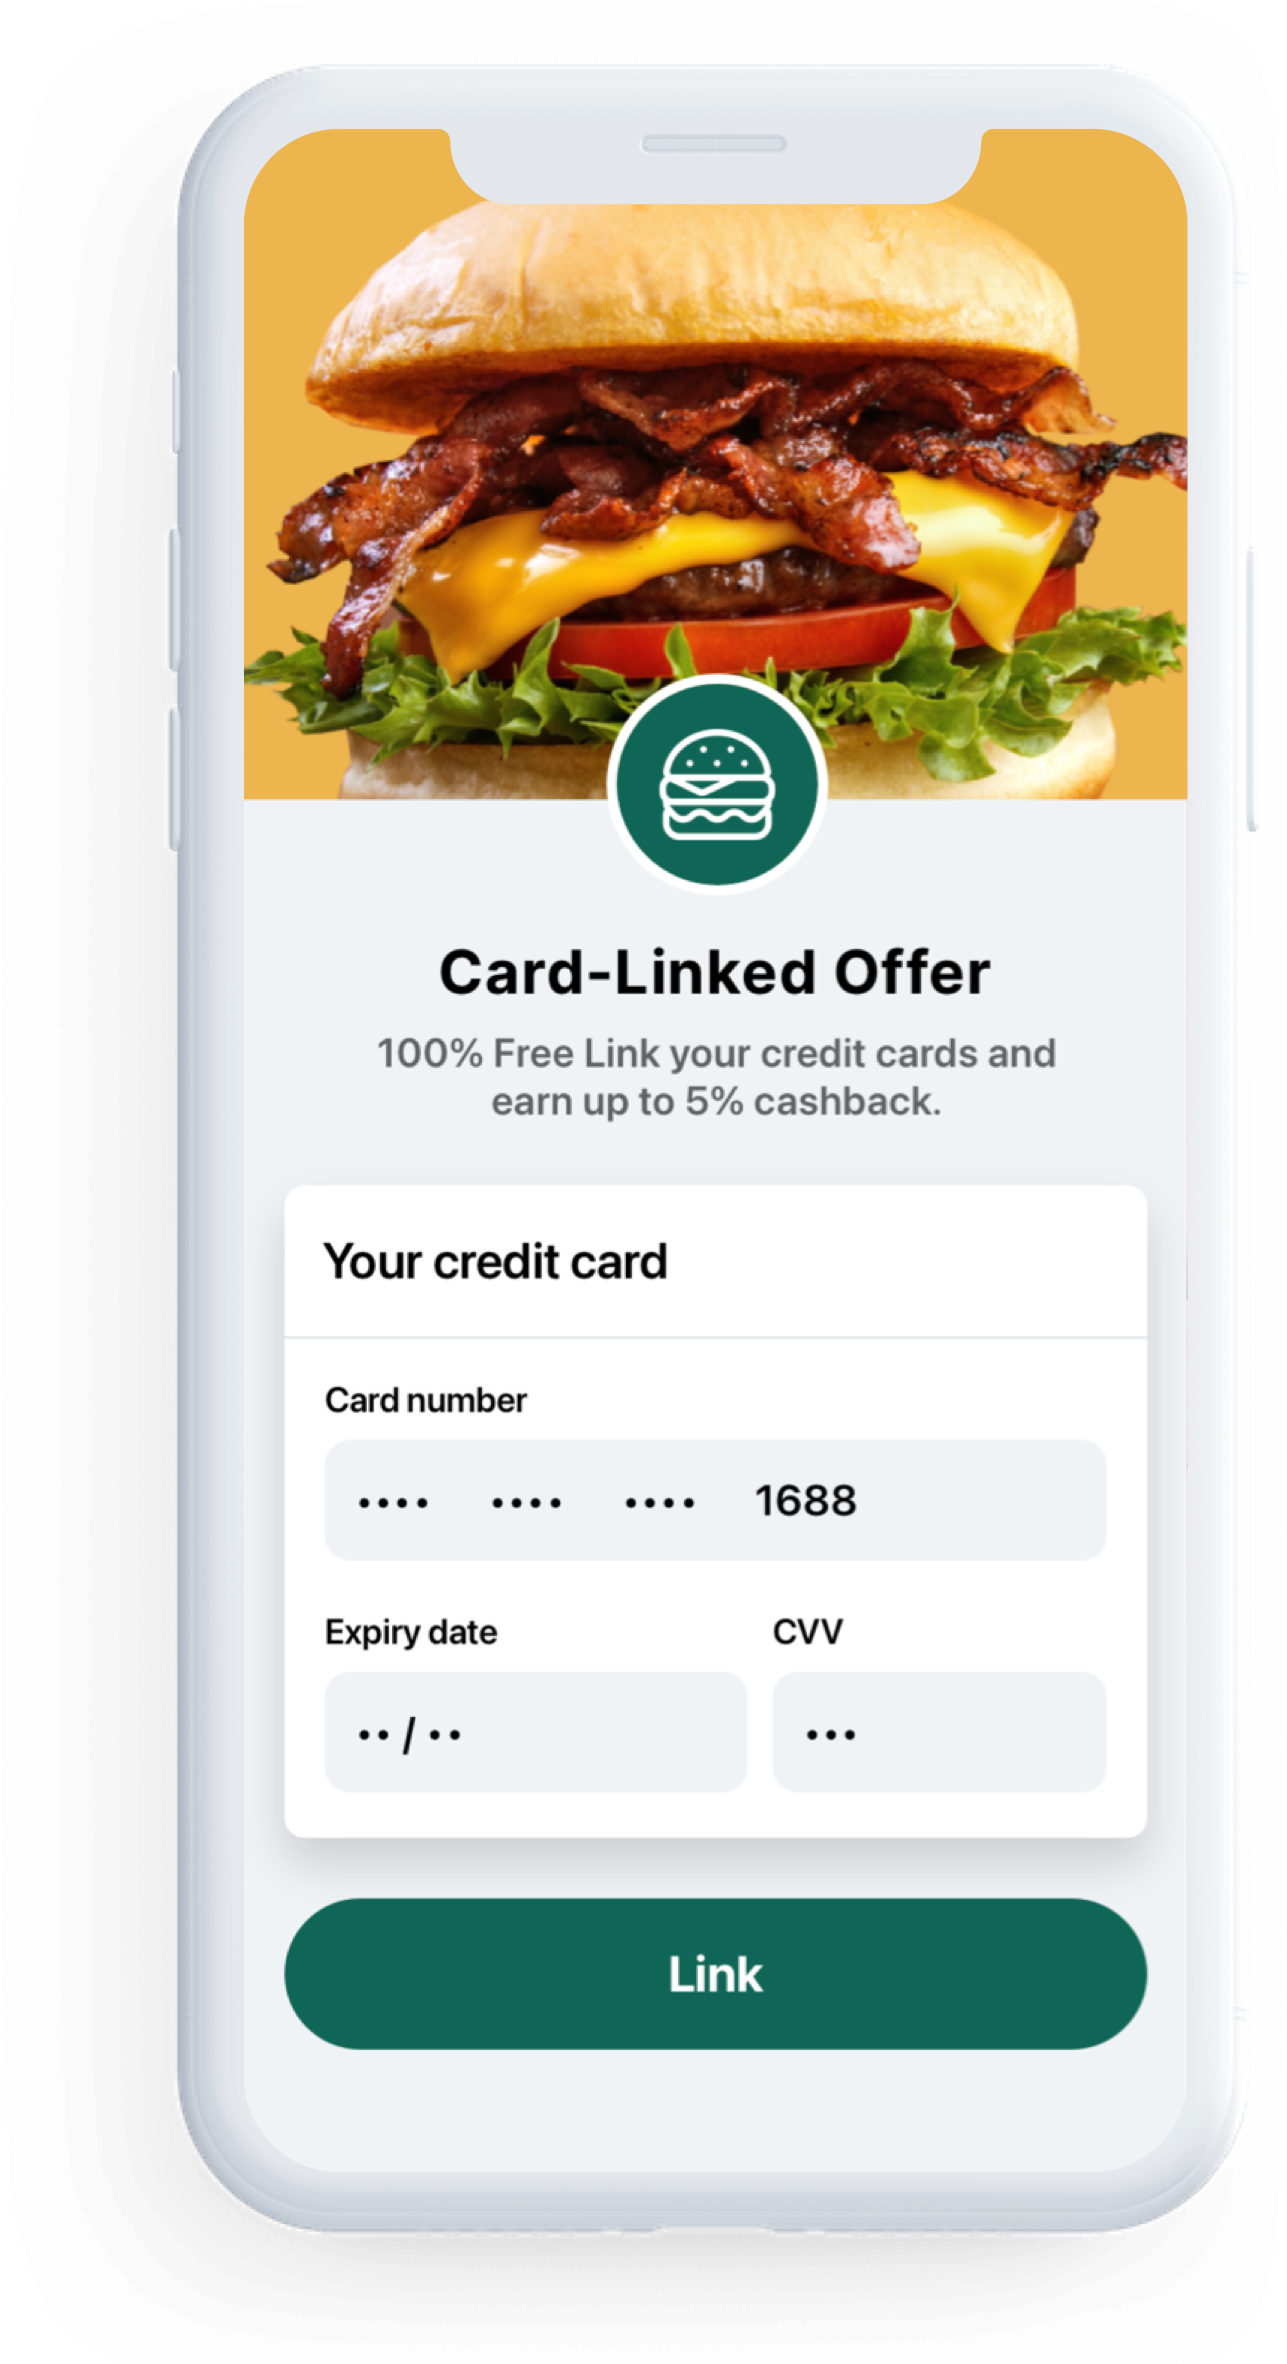 Seamless Offer Redemption Simplify the way customers engage with your offers. Let customers get cashback and rewards credited directly to their bank card, streamlining the offer redemption process.